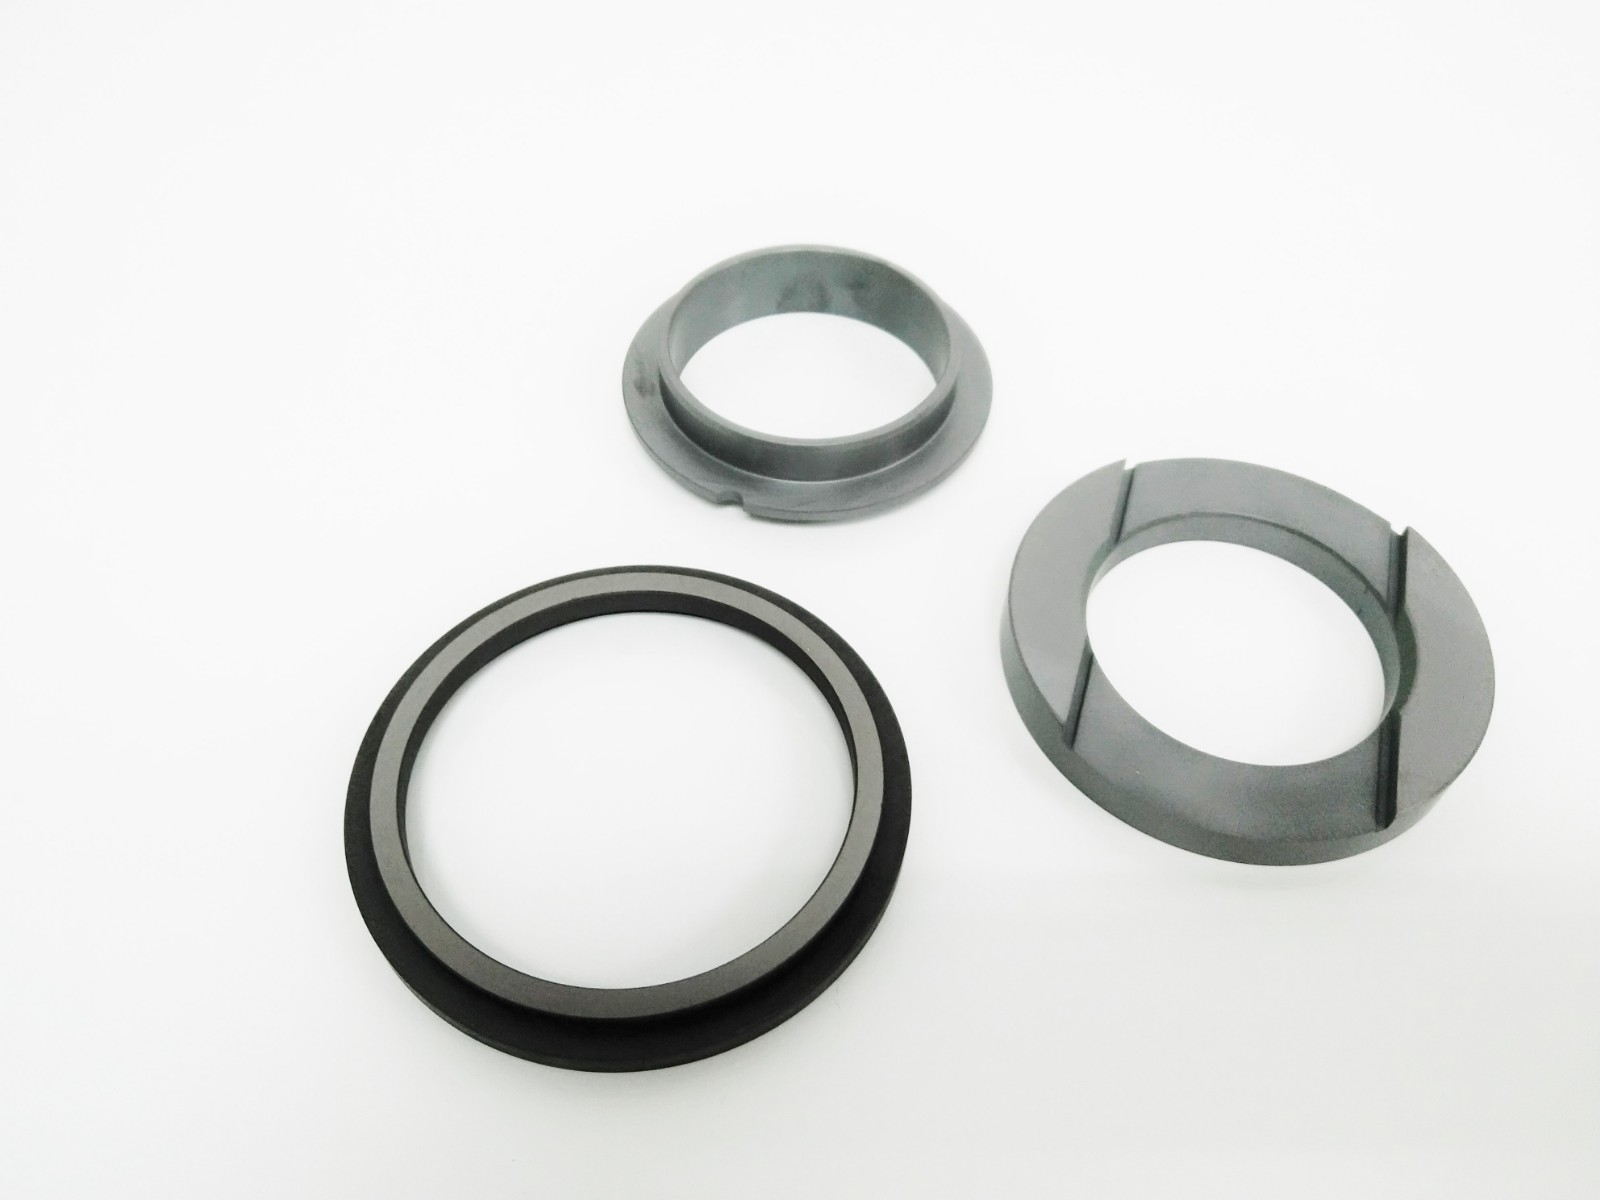 Lepu seal fristam pump seal kits OEM for high-pressure applications-1